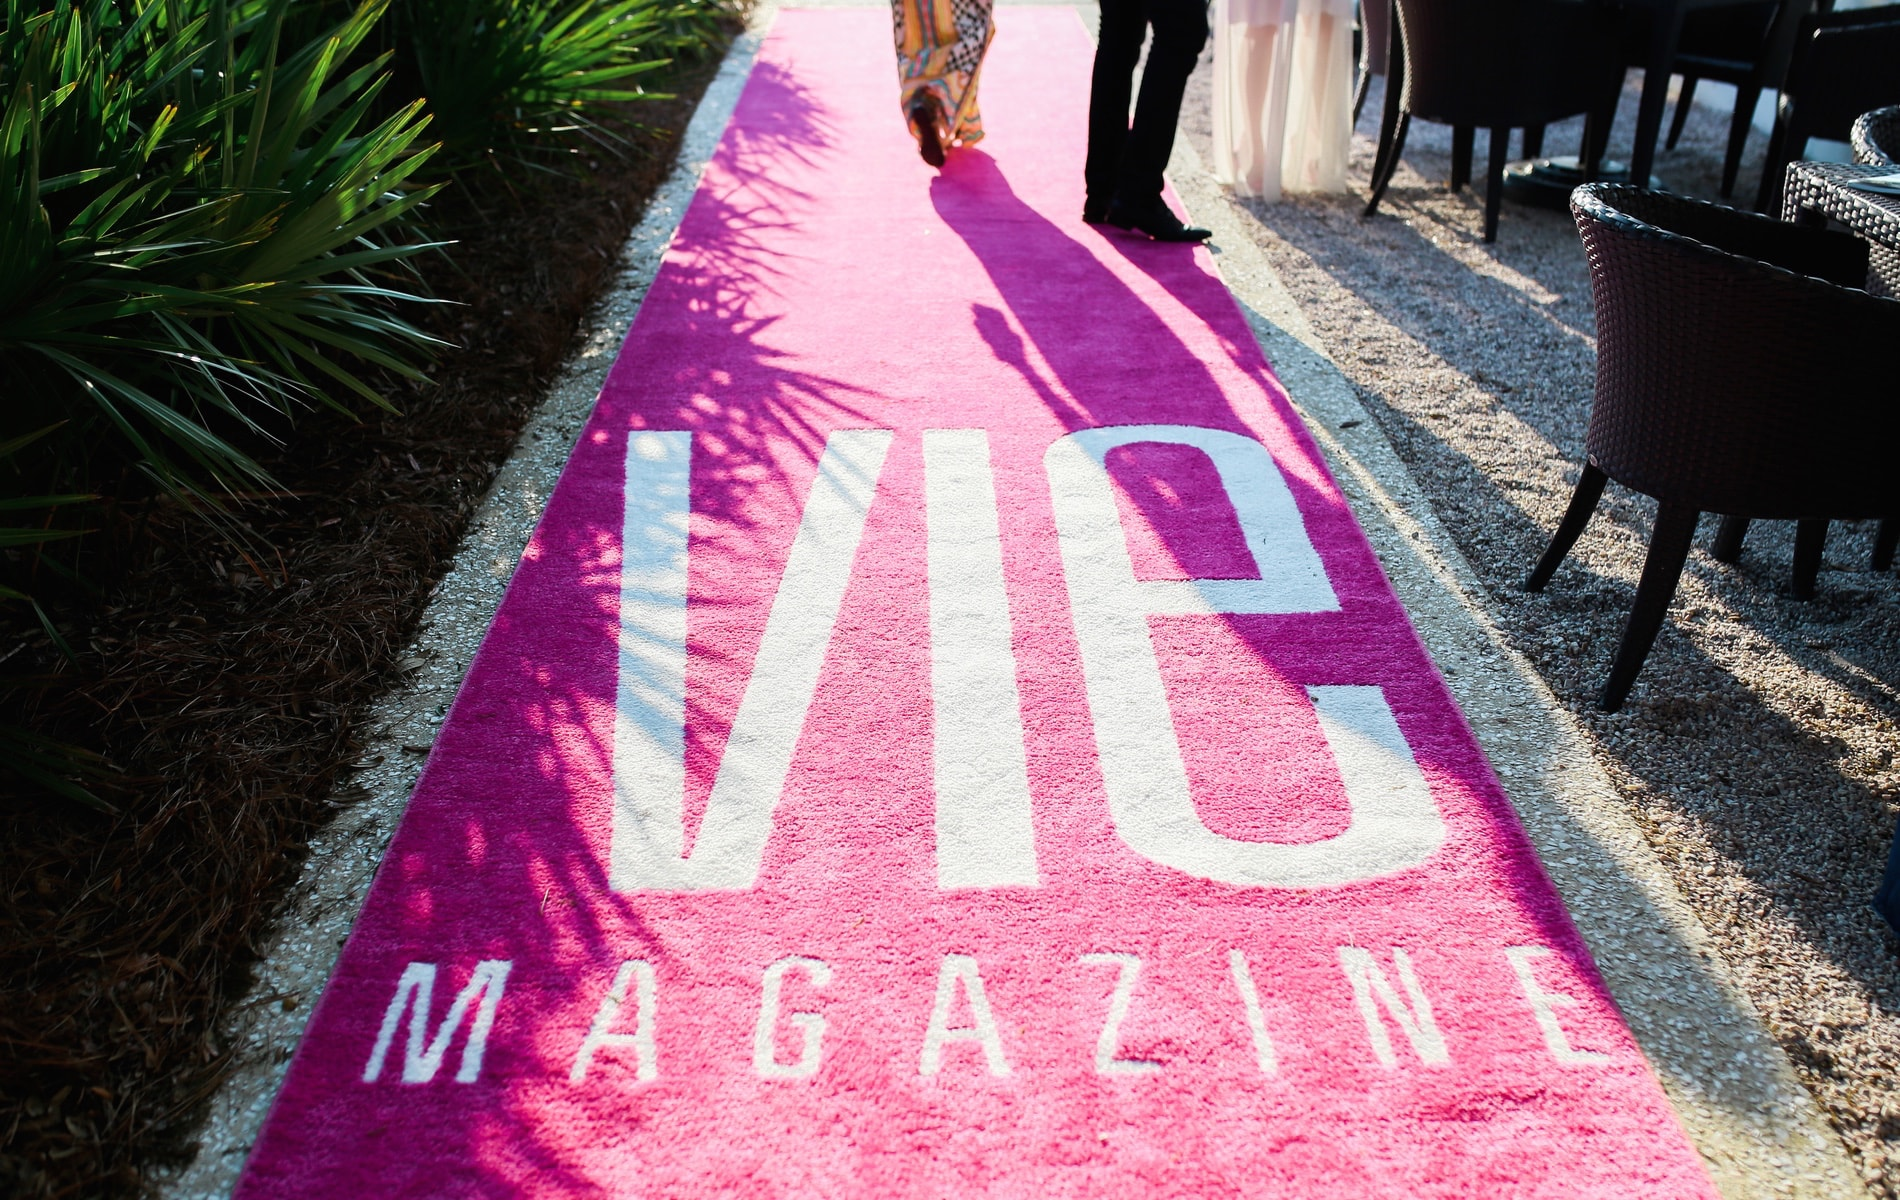 vie magazine digital graffiti alys beach